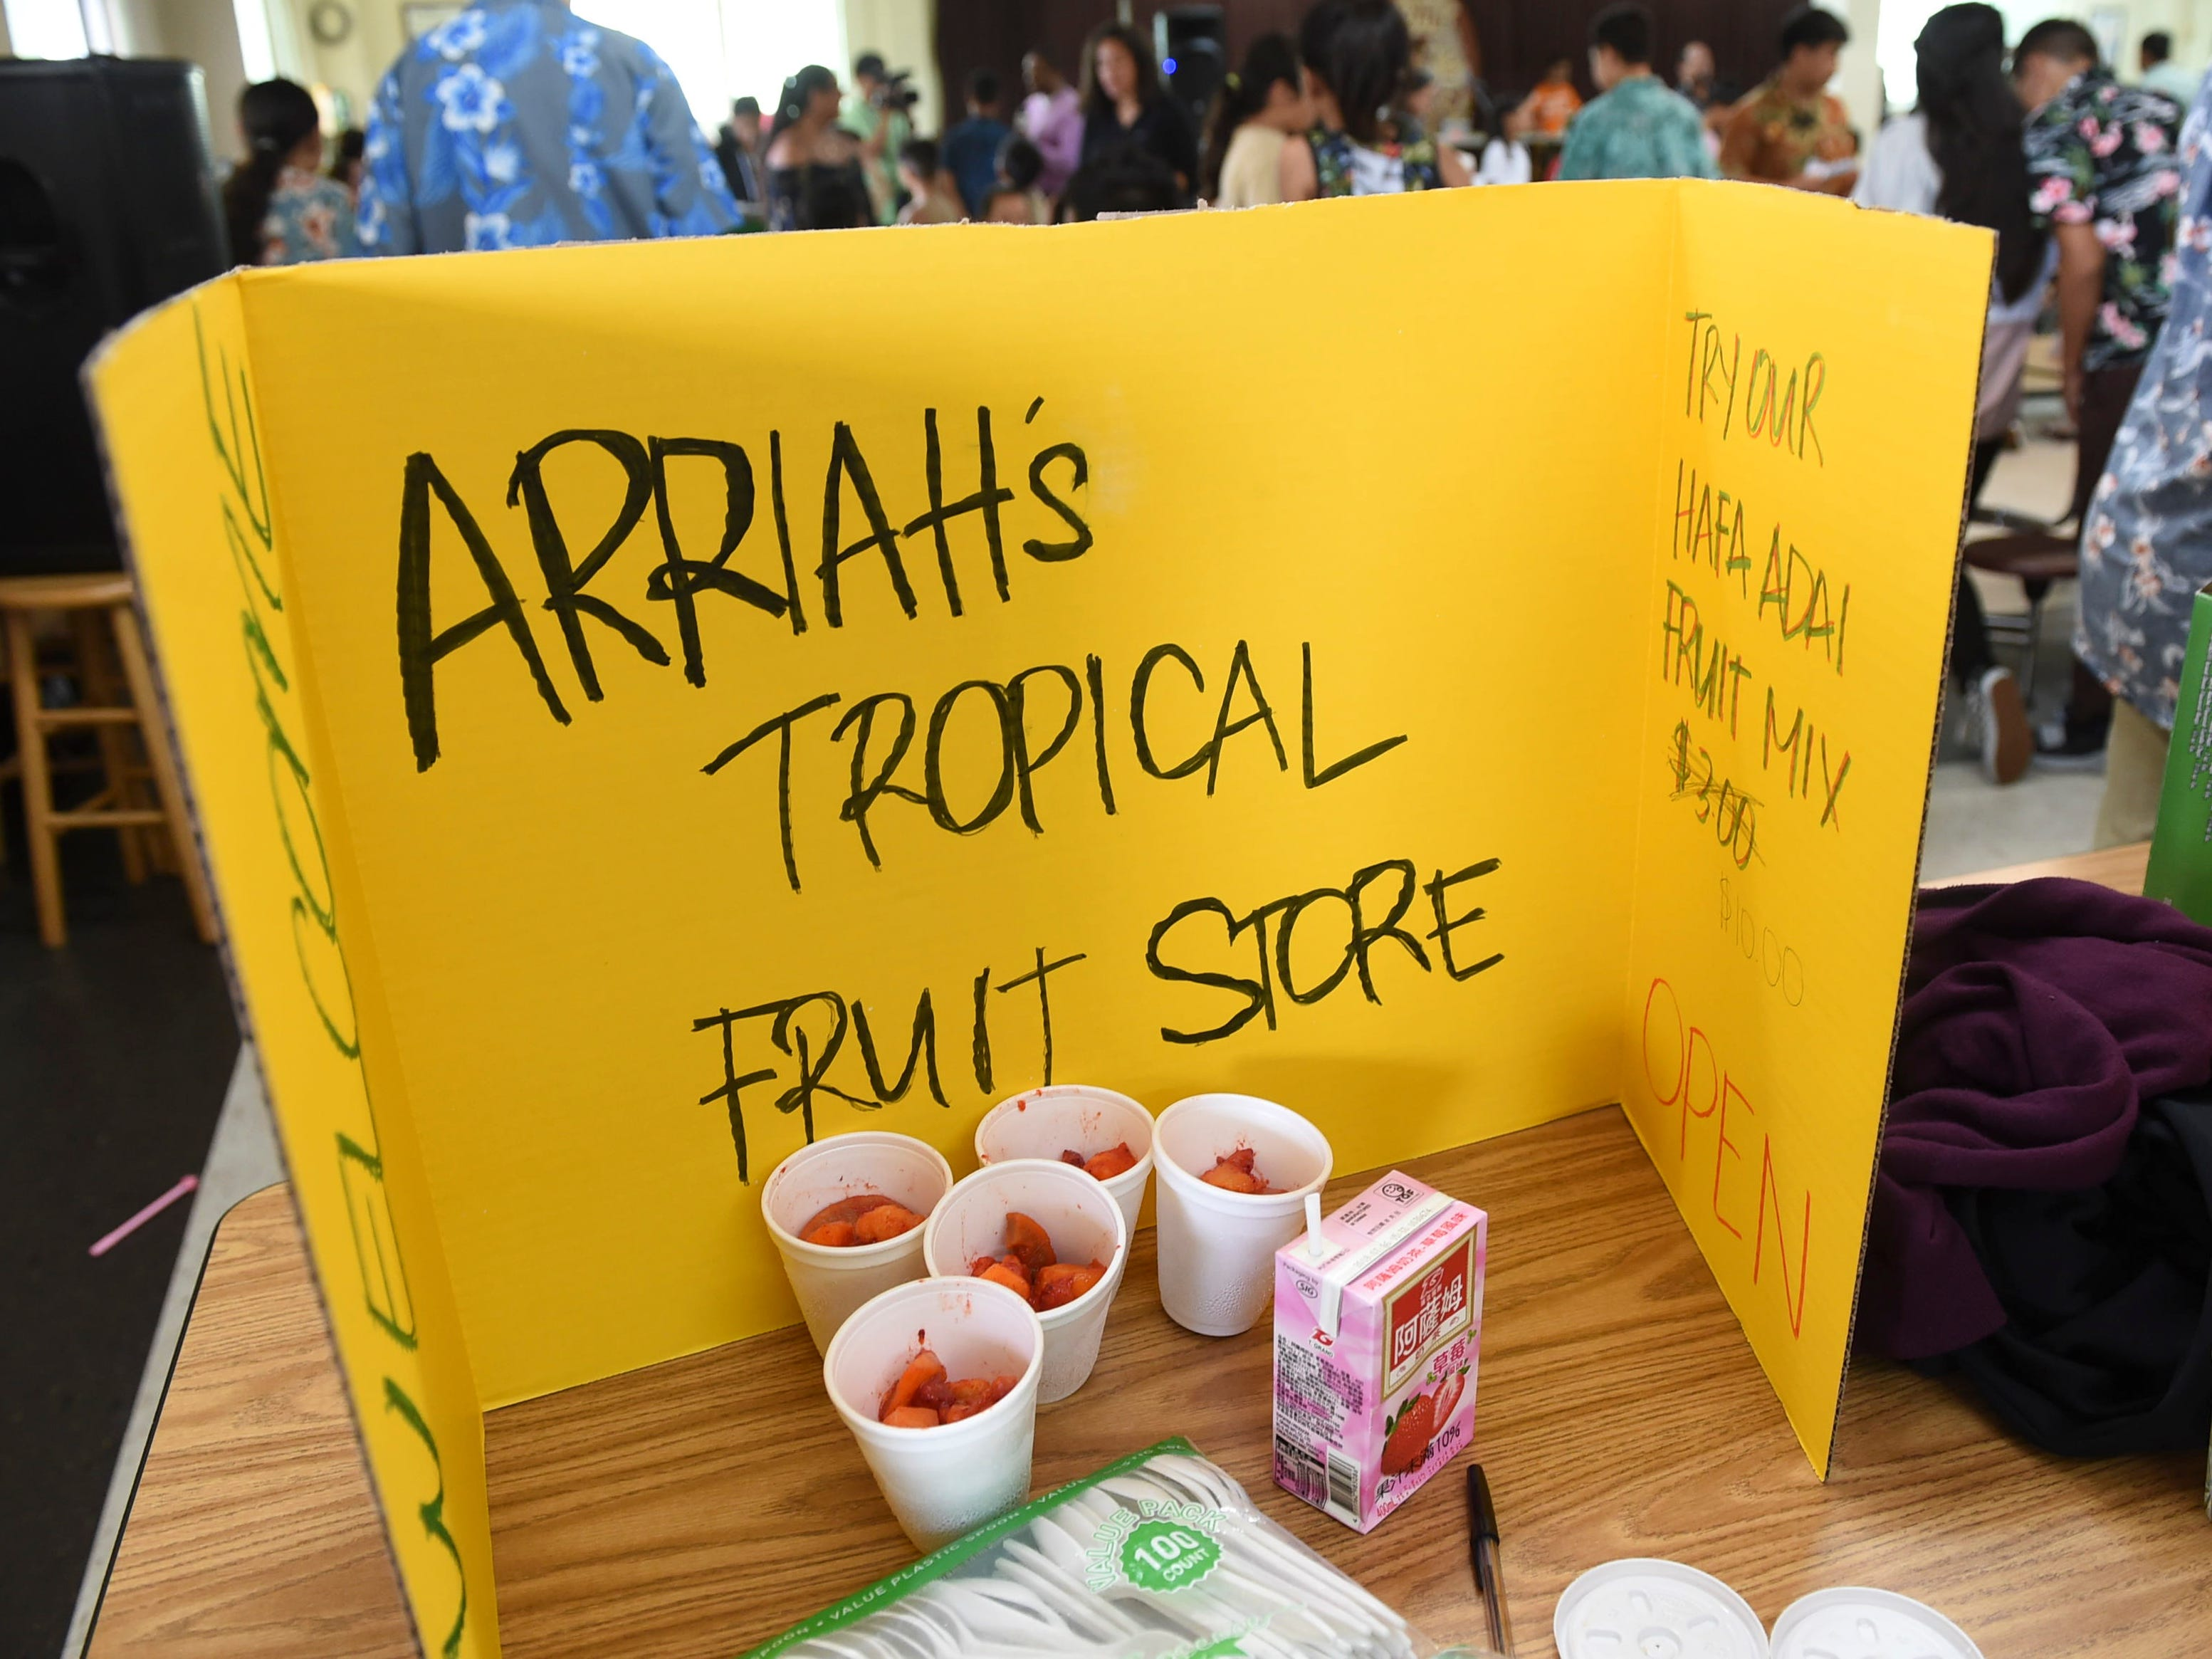 Arriah's Tropical Fruit Store during the 5th Annual Ysrael School of Business Retail Bazaar and Entrepreneur Fair at Our Lady of Mount Carmel Catholic School in Agat, Jan. 18, 2019.